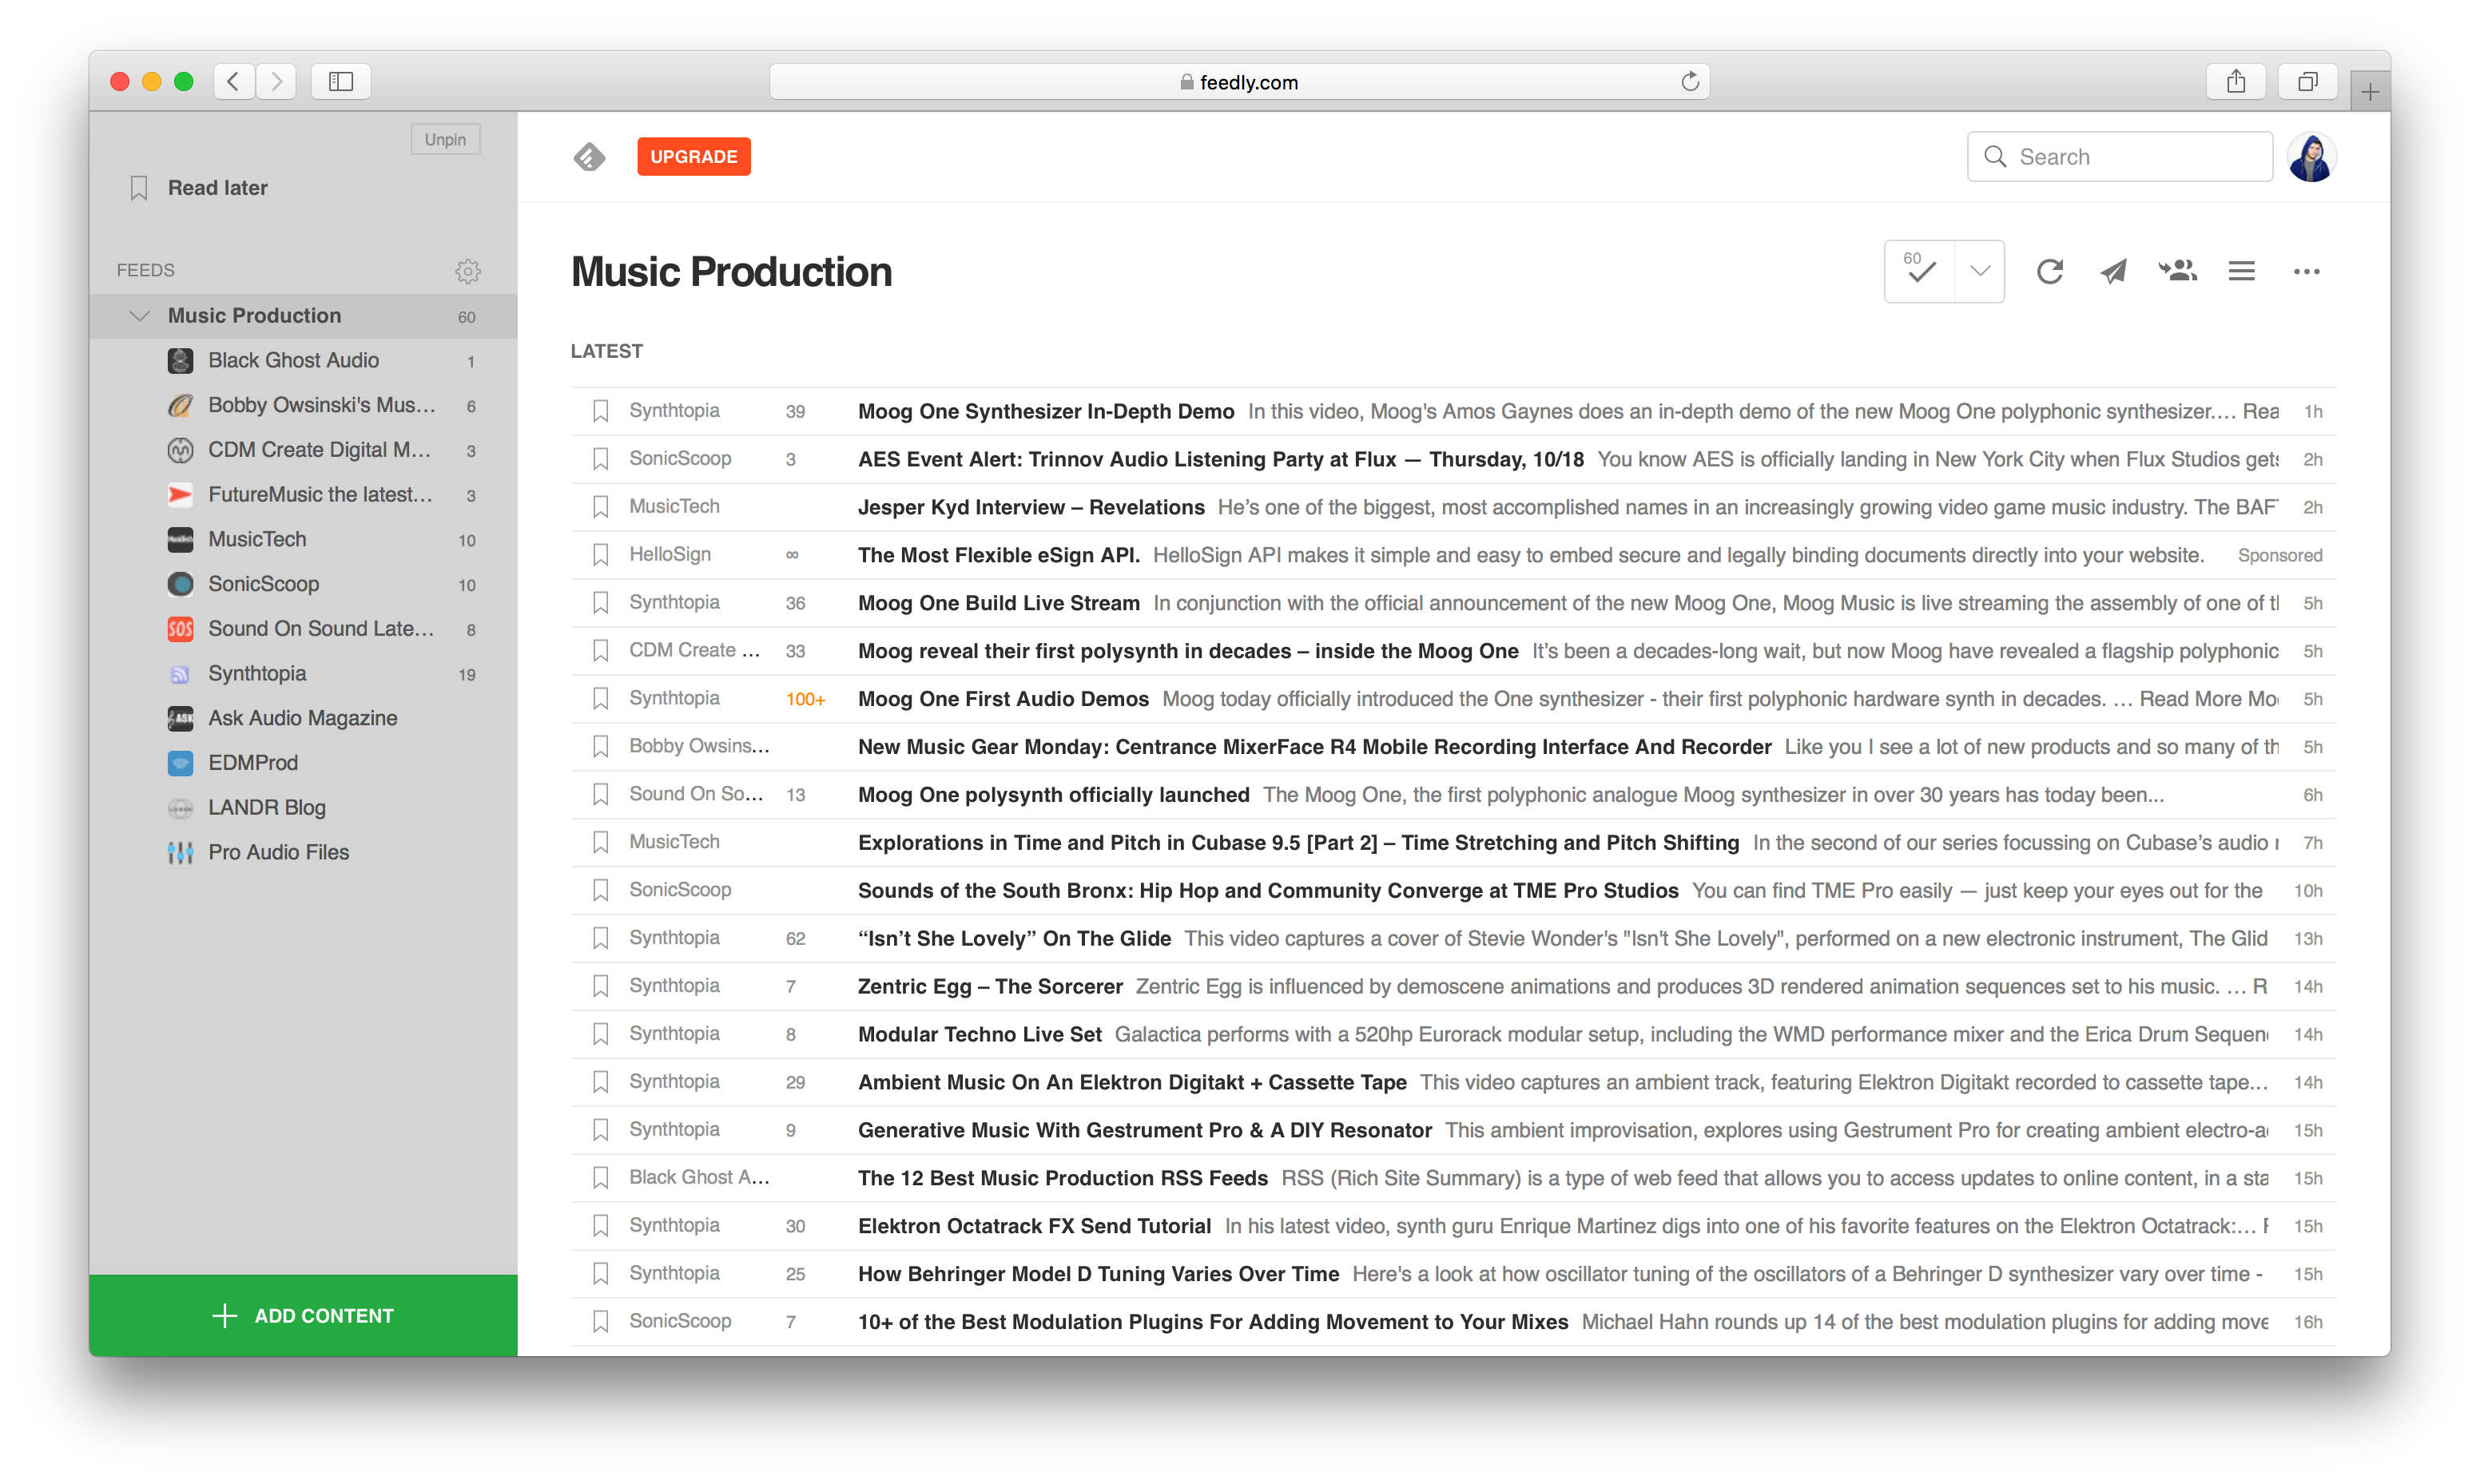 An image of a Music Production feed in Feedly.